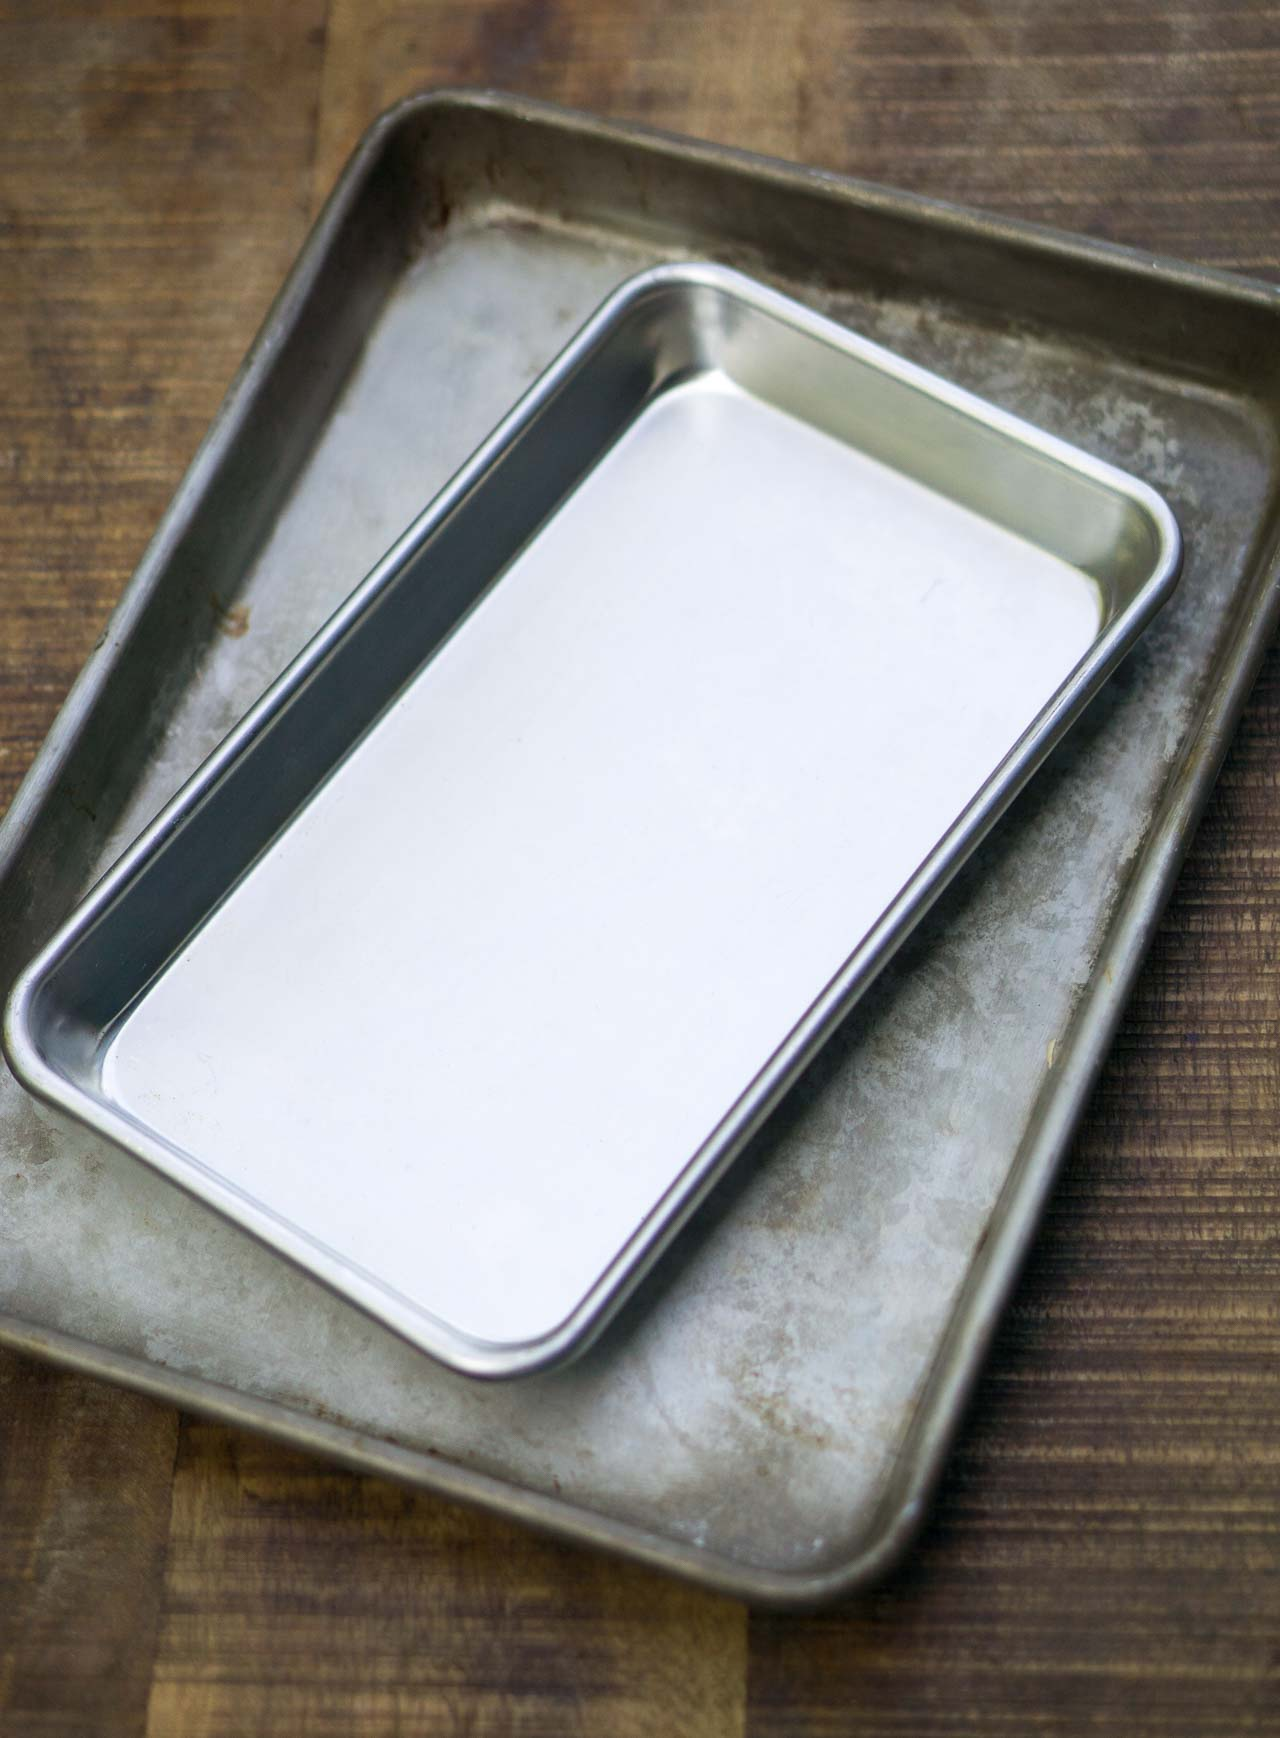 My best new baking find...smaller baking sheets!